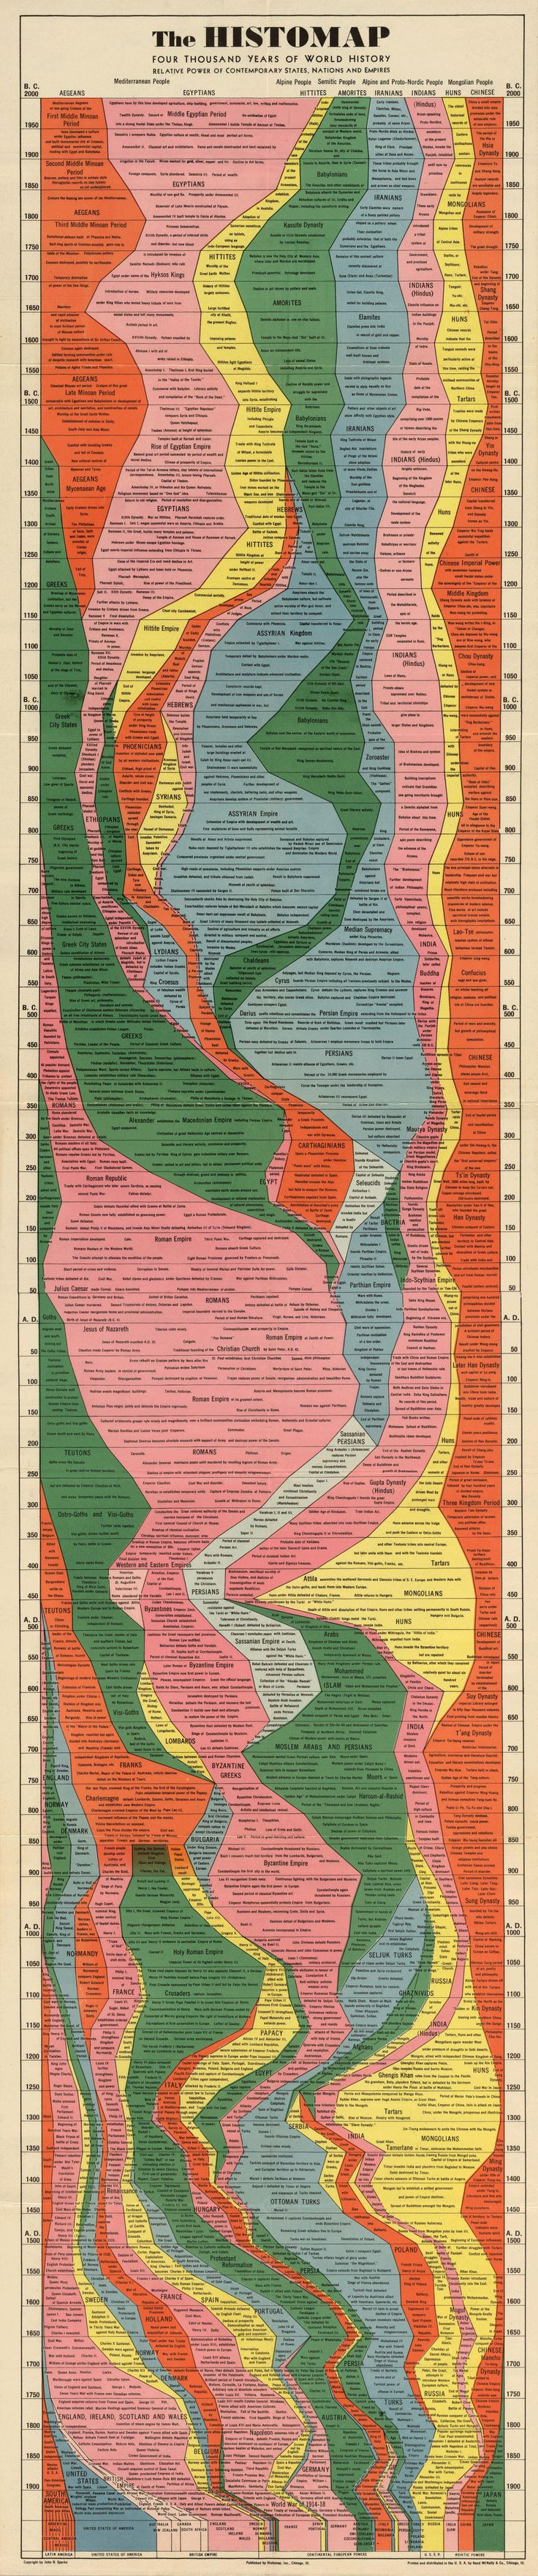 4,000 Years of World History in One Epic Chart